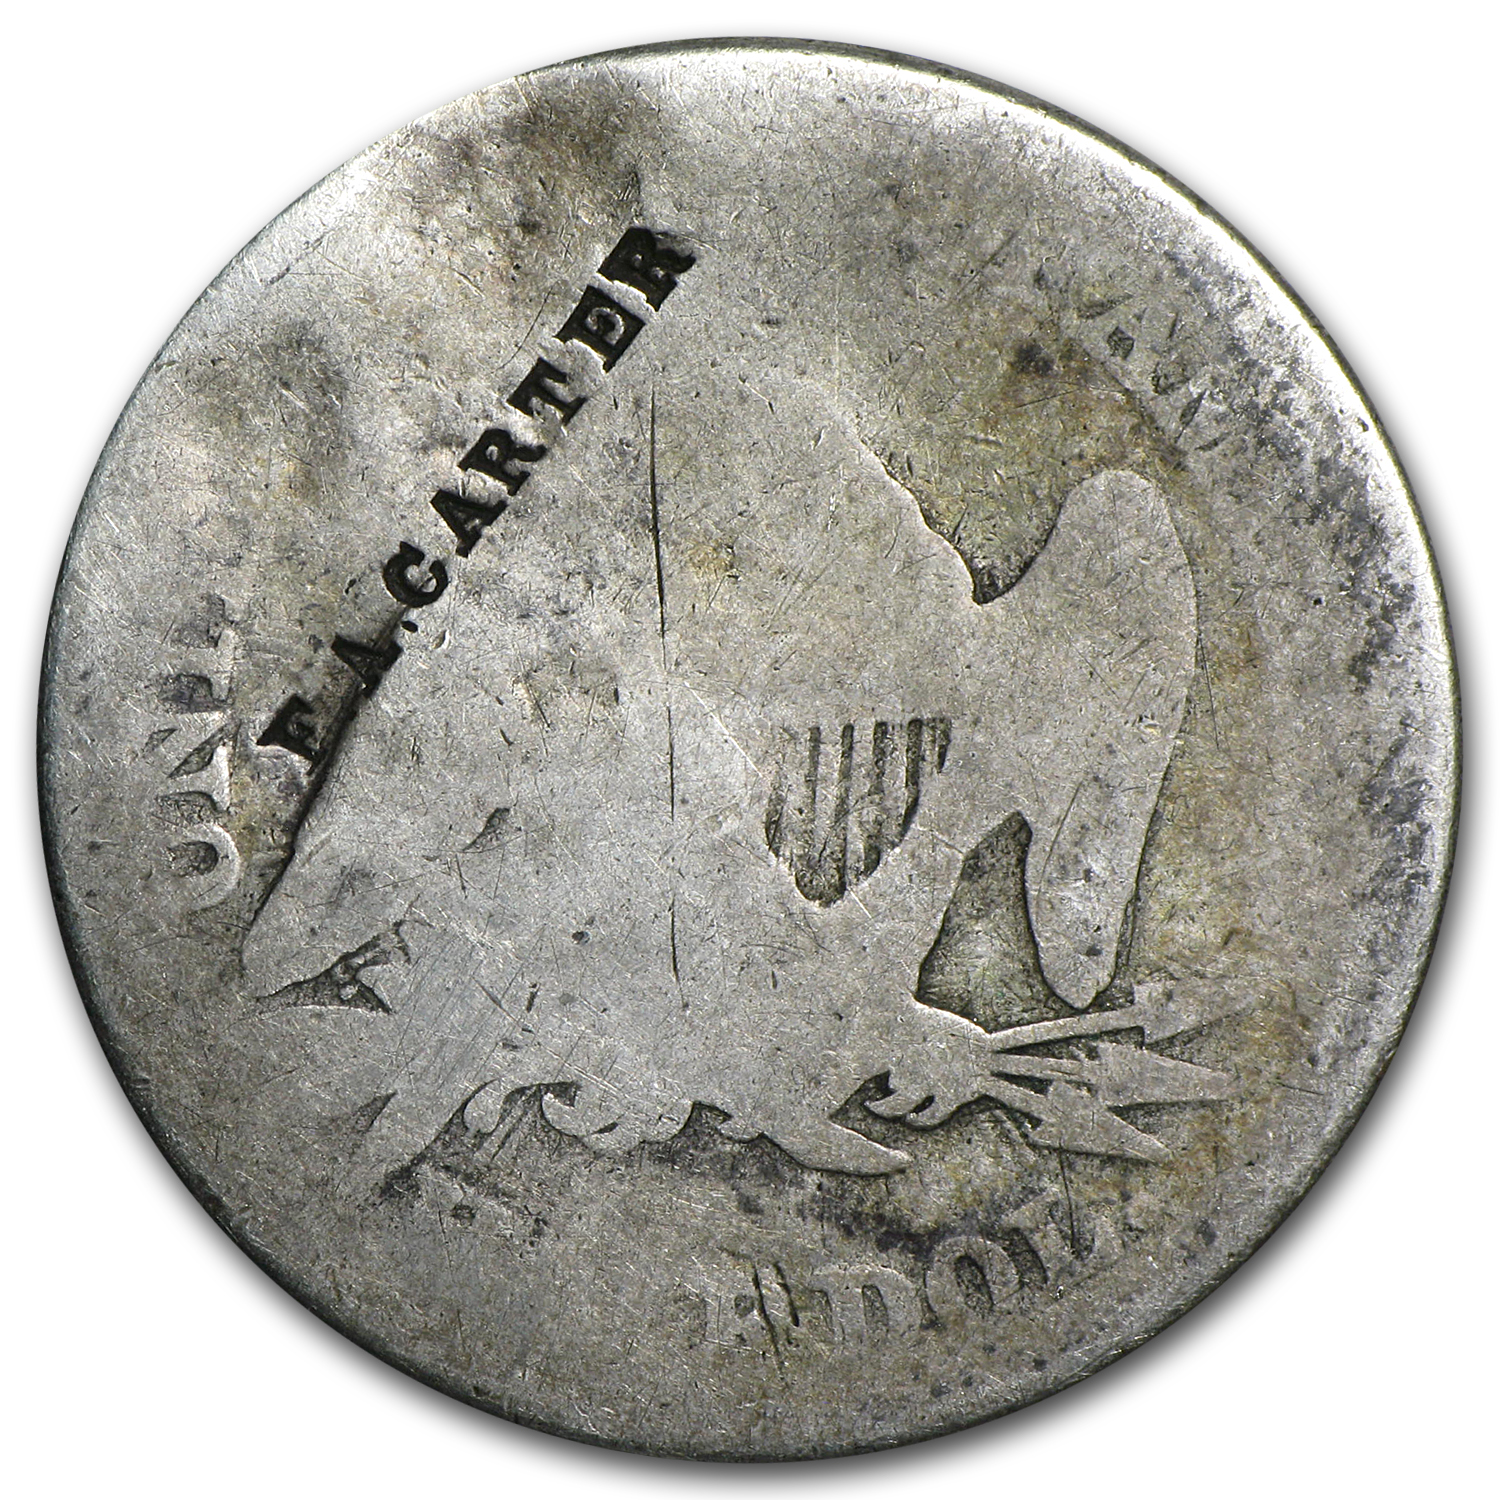 1853 Liberty Seated Half Dollar (Counterstamped F.A. Carter)